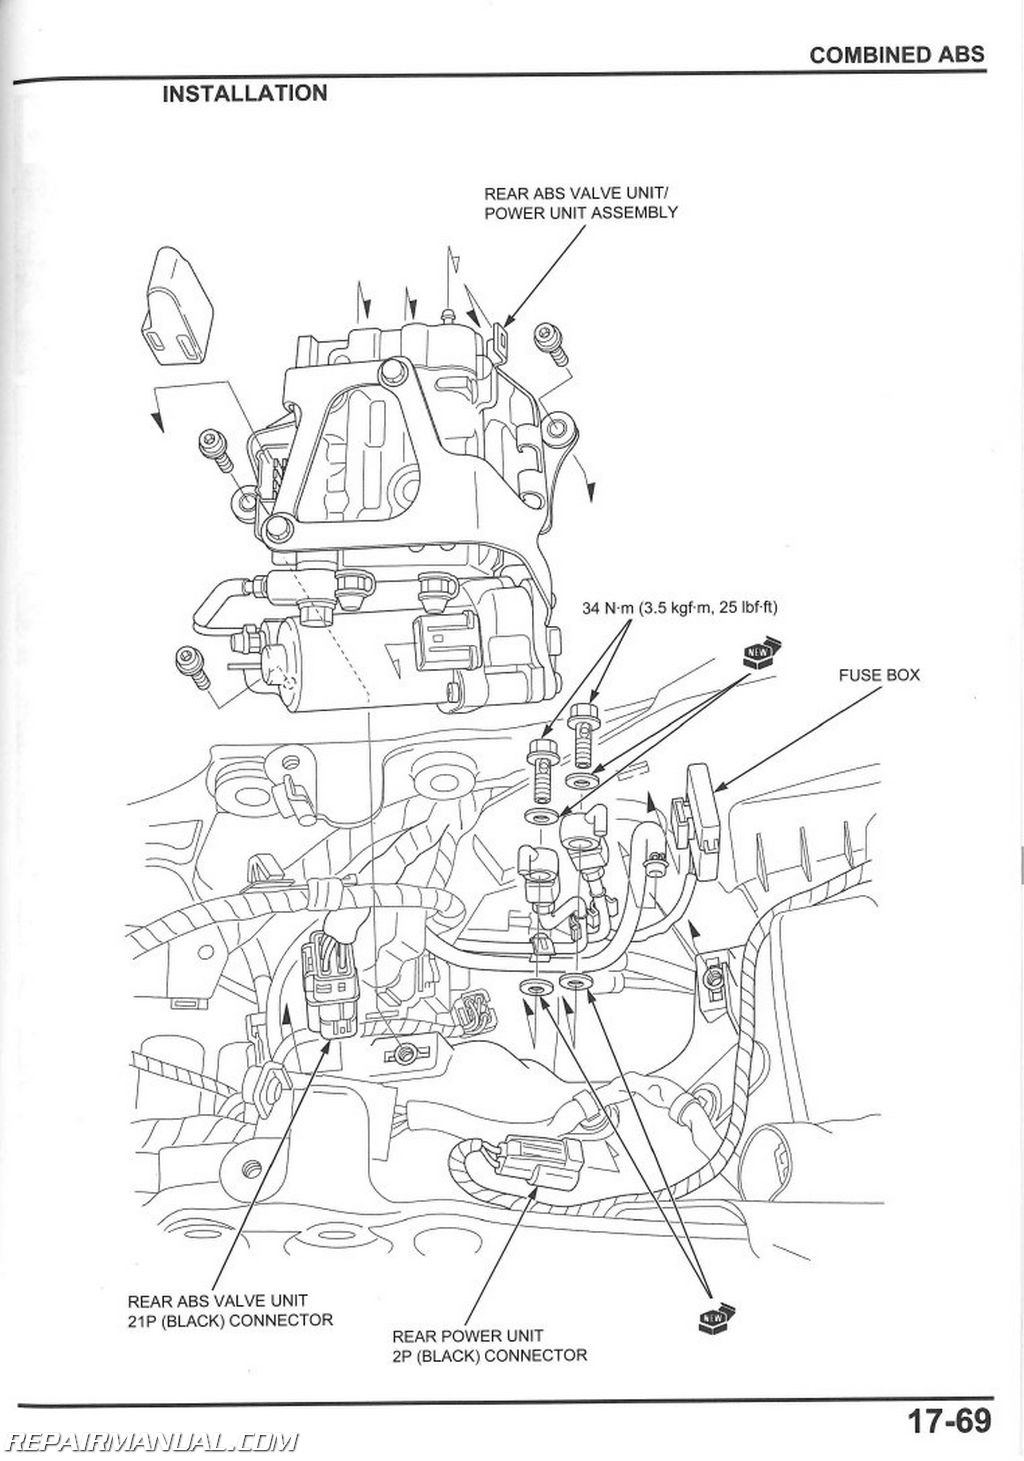 1991 Sportster 1200 Wiring Diagram besides Location Oil Drain Plug 2013 Harley Davidson besides Hdclutch parts besides Harley Evo Oil Line Diagram For Engine moreover 883 Engine Parts Diagram Html. on 2007 883 harley sportster wiring